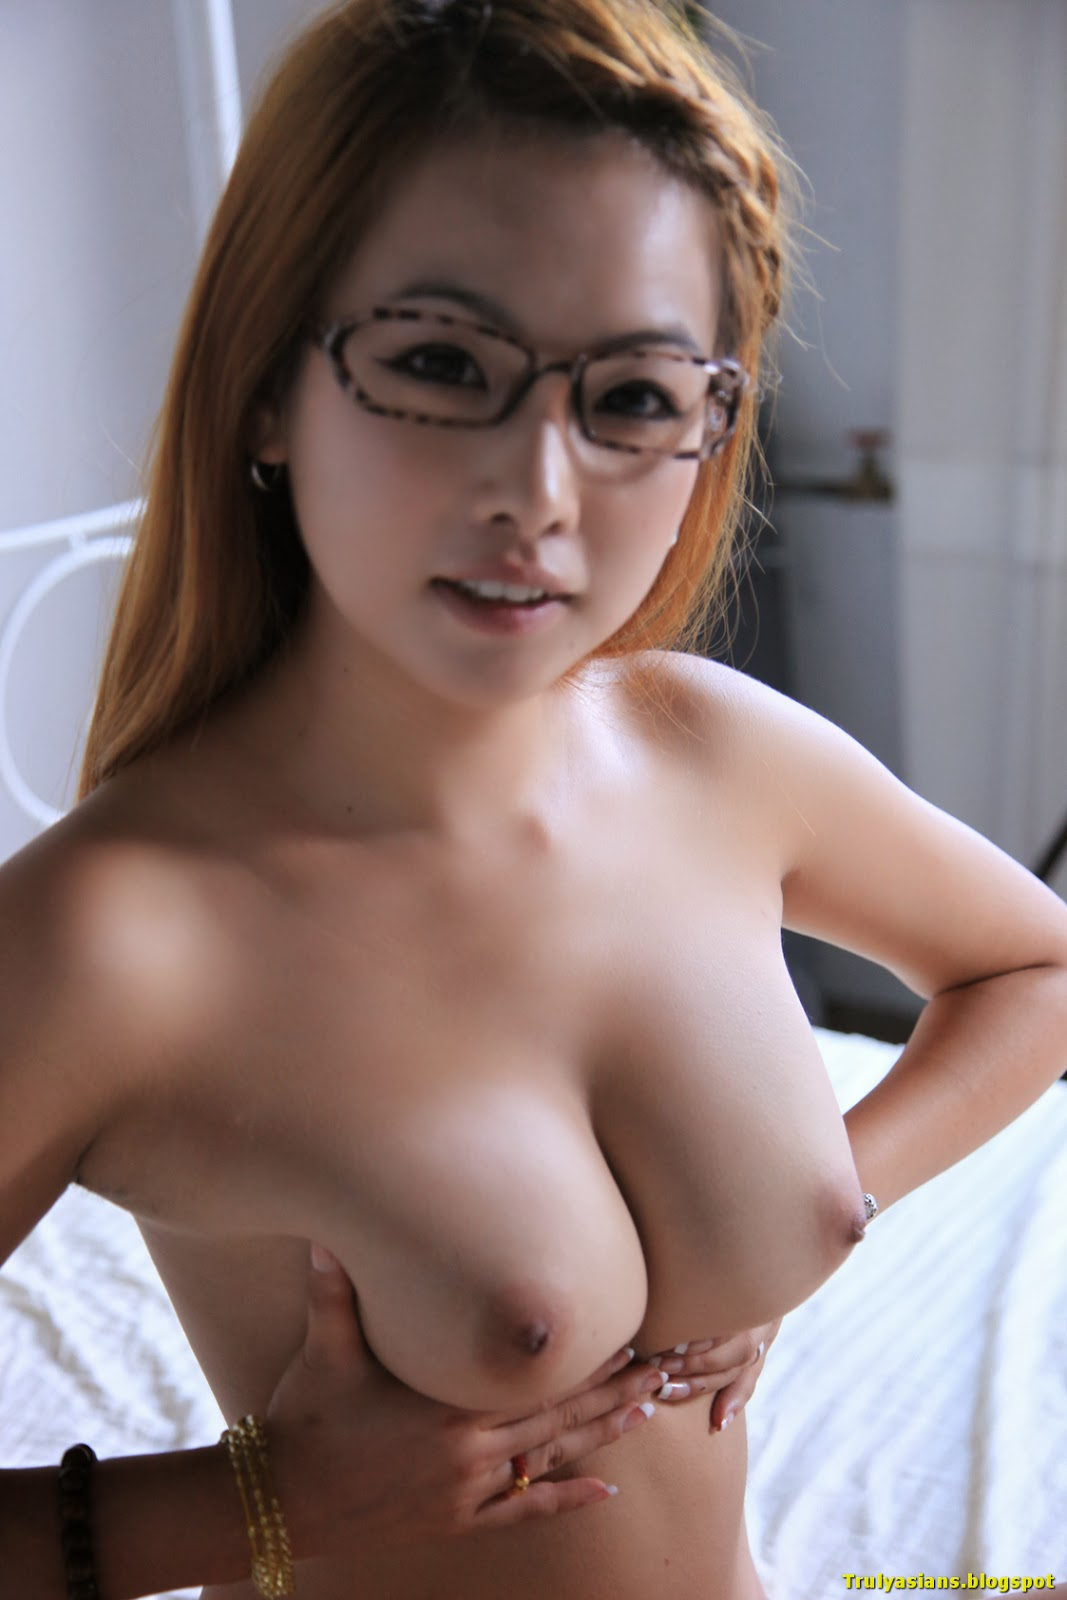 Spread girls nude asian